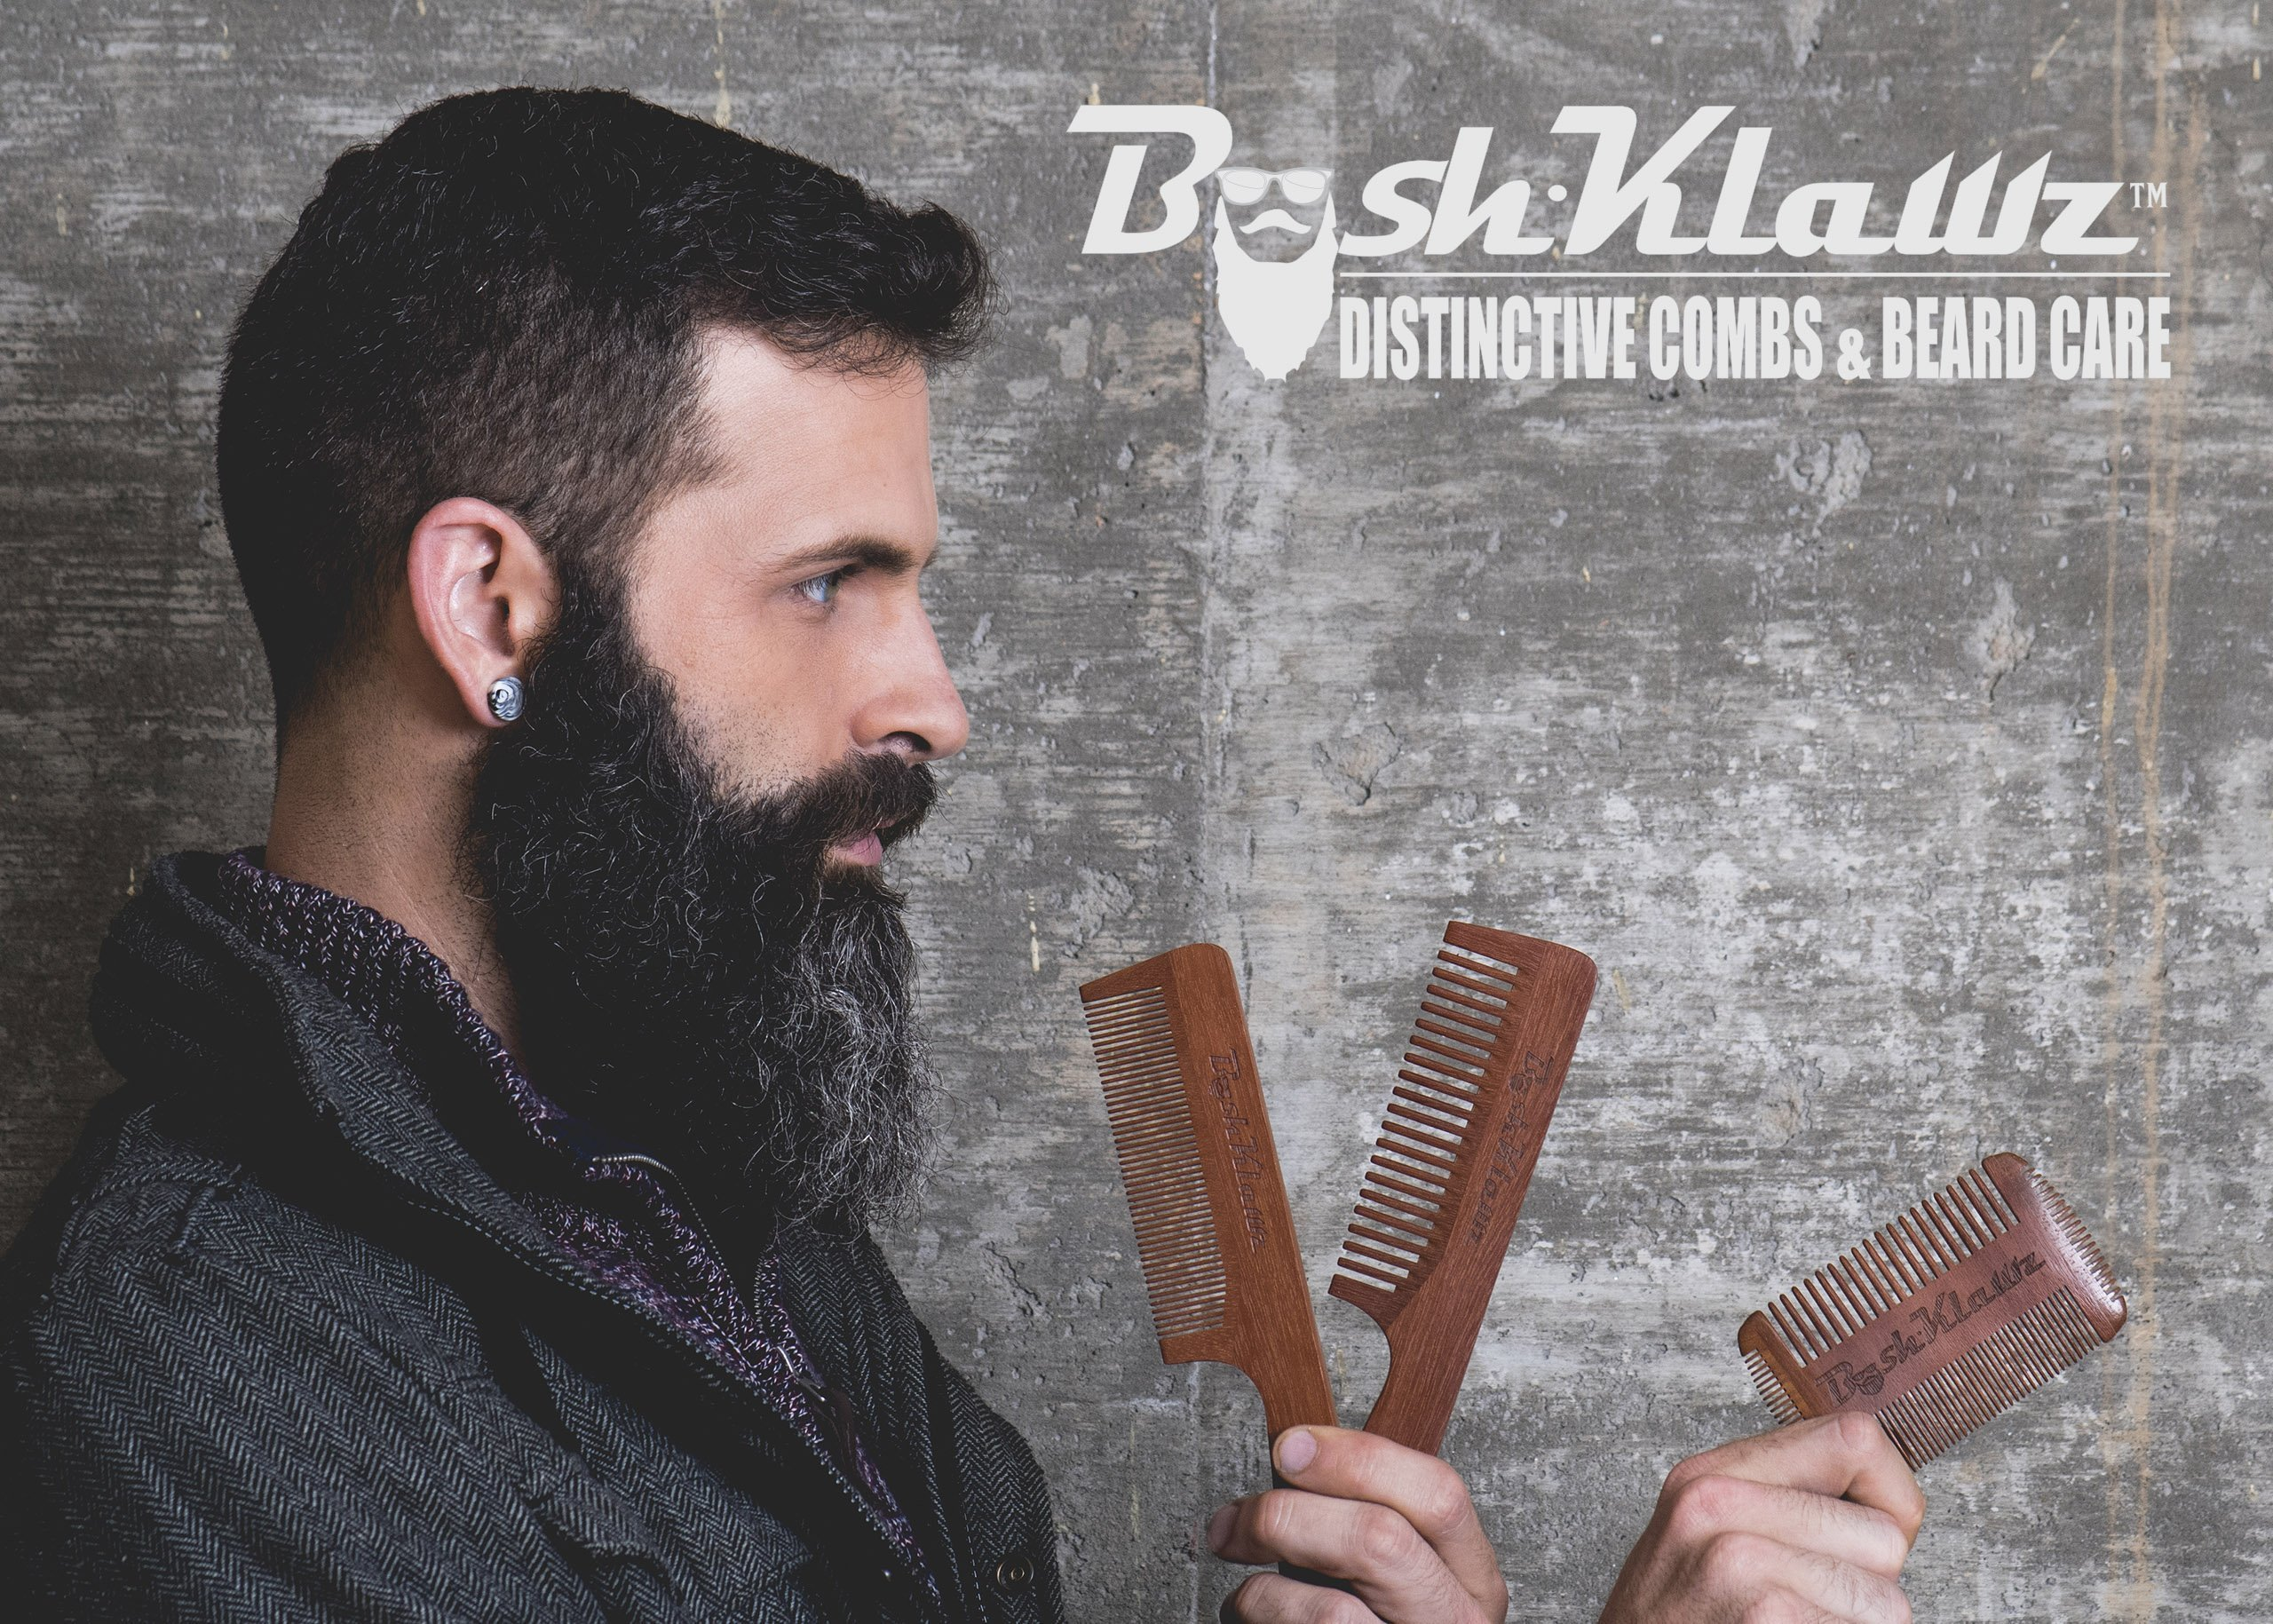 ManKlawz Men's Comb Fine Teeth Wooden Hair Comb Detailer for Fine Hair Parts and Styling - Best Handle Hair Comb for Men with Big Manly Hands by BushKlawz (Image #5)